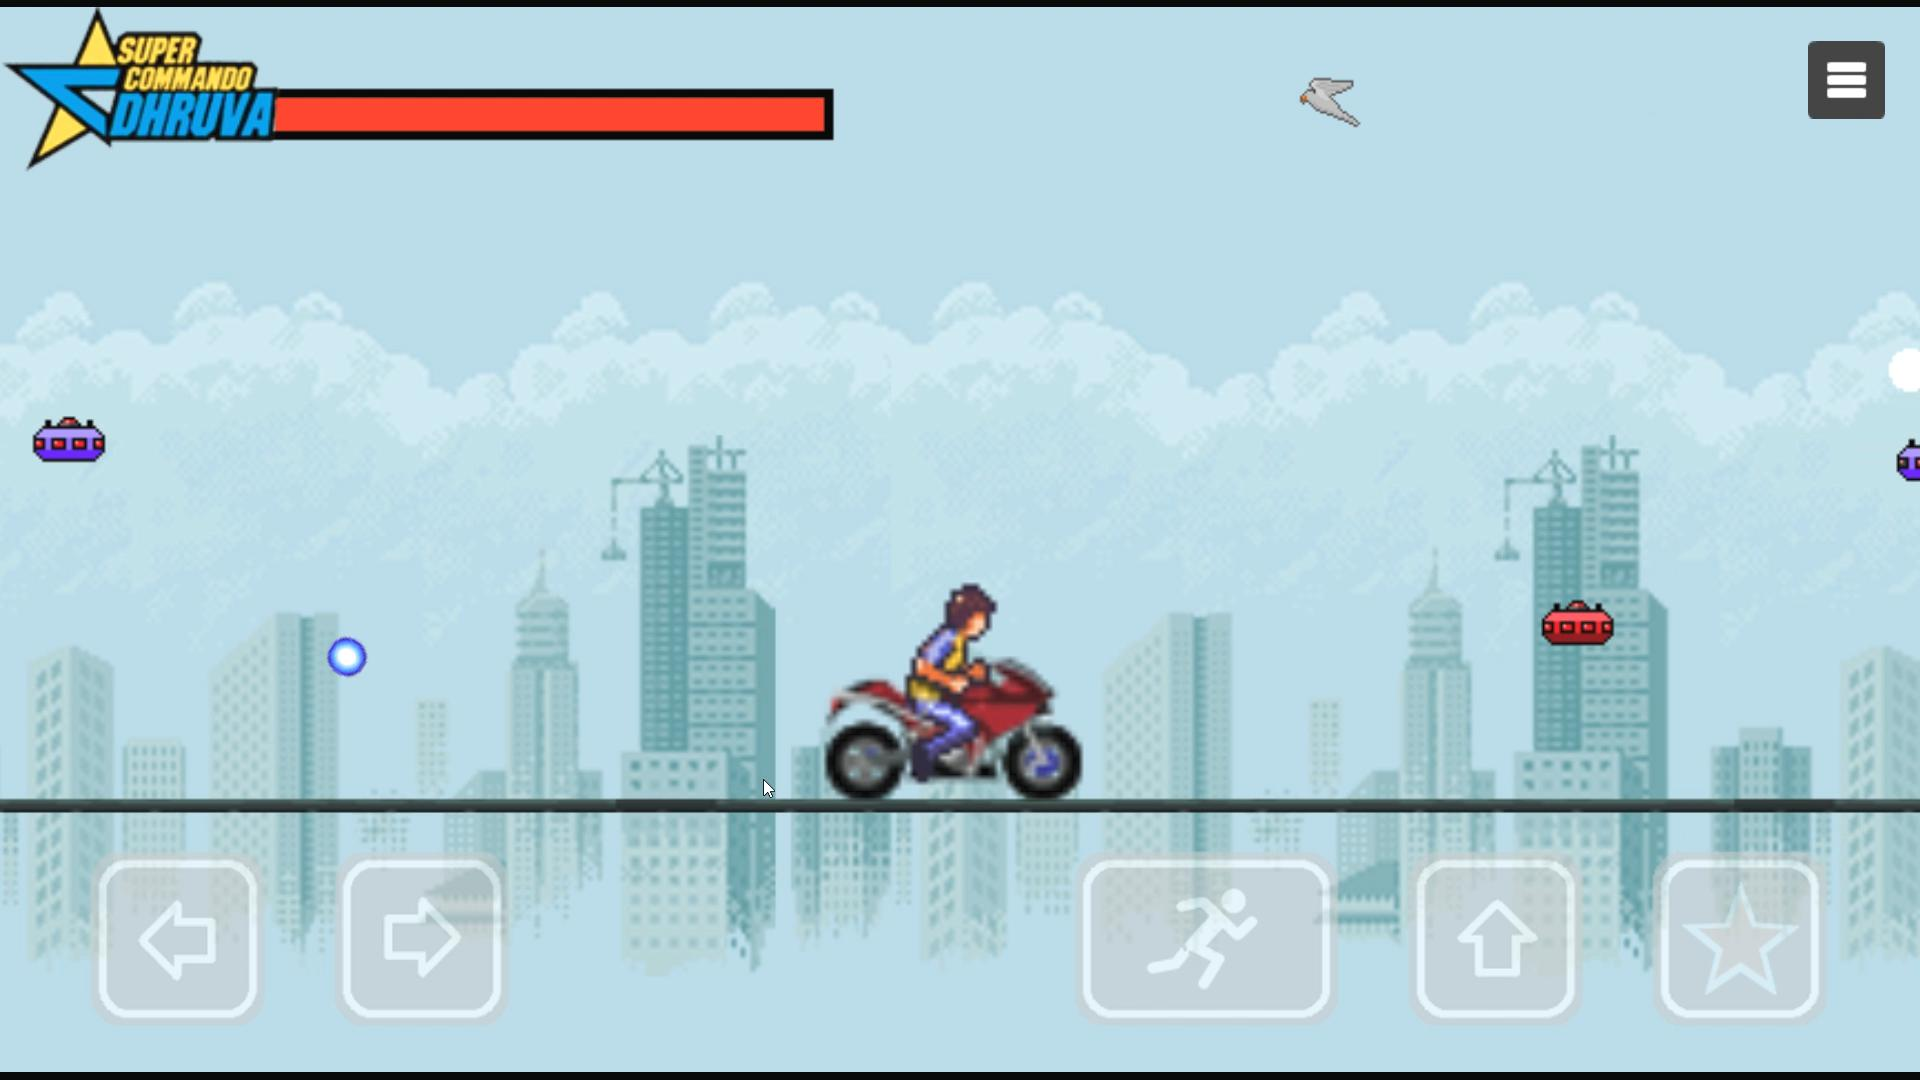 Super Commando Dhruva 游戏截图3